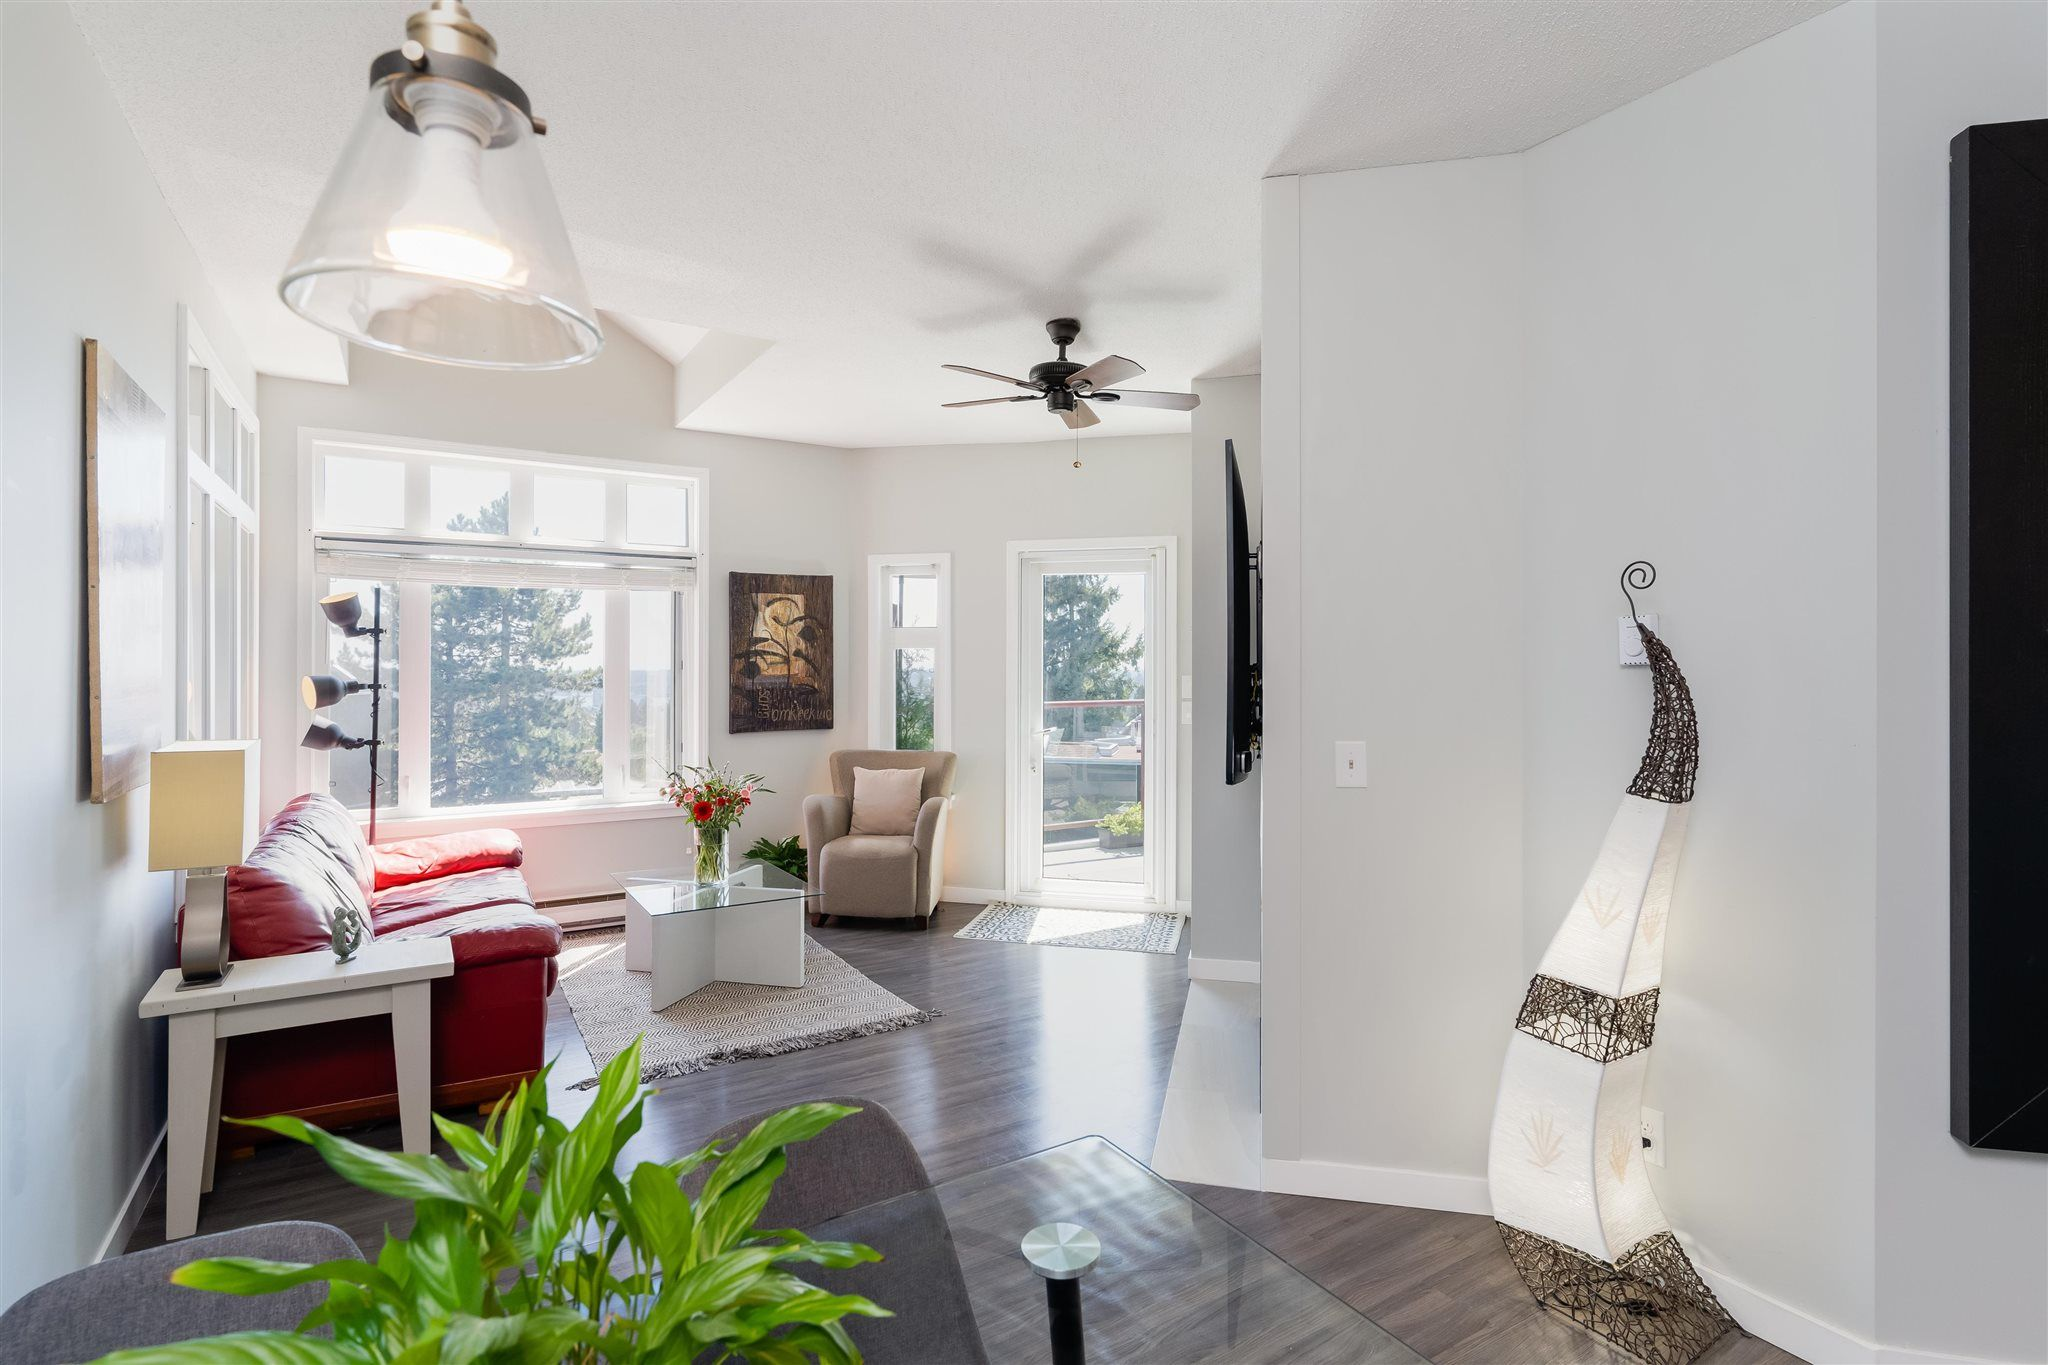 """Main Photo: 511 121 W 29TH Street in North Vancouver: Upper Lonsdale Condo for sale in """"Somerset Green"""" : MLS®# R2608574"""